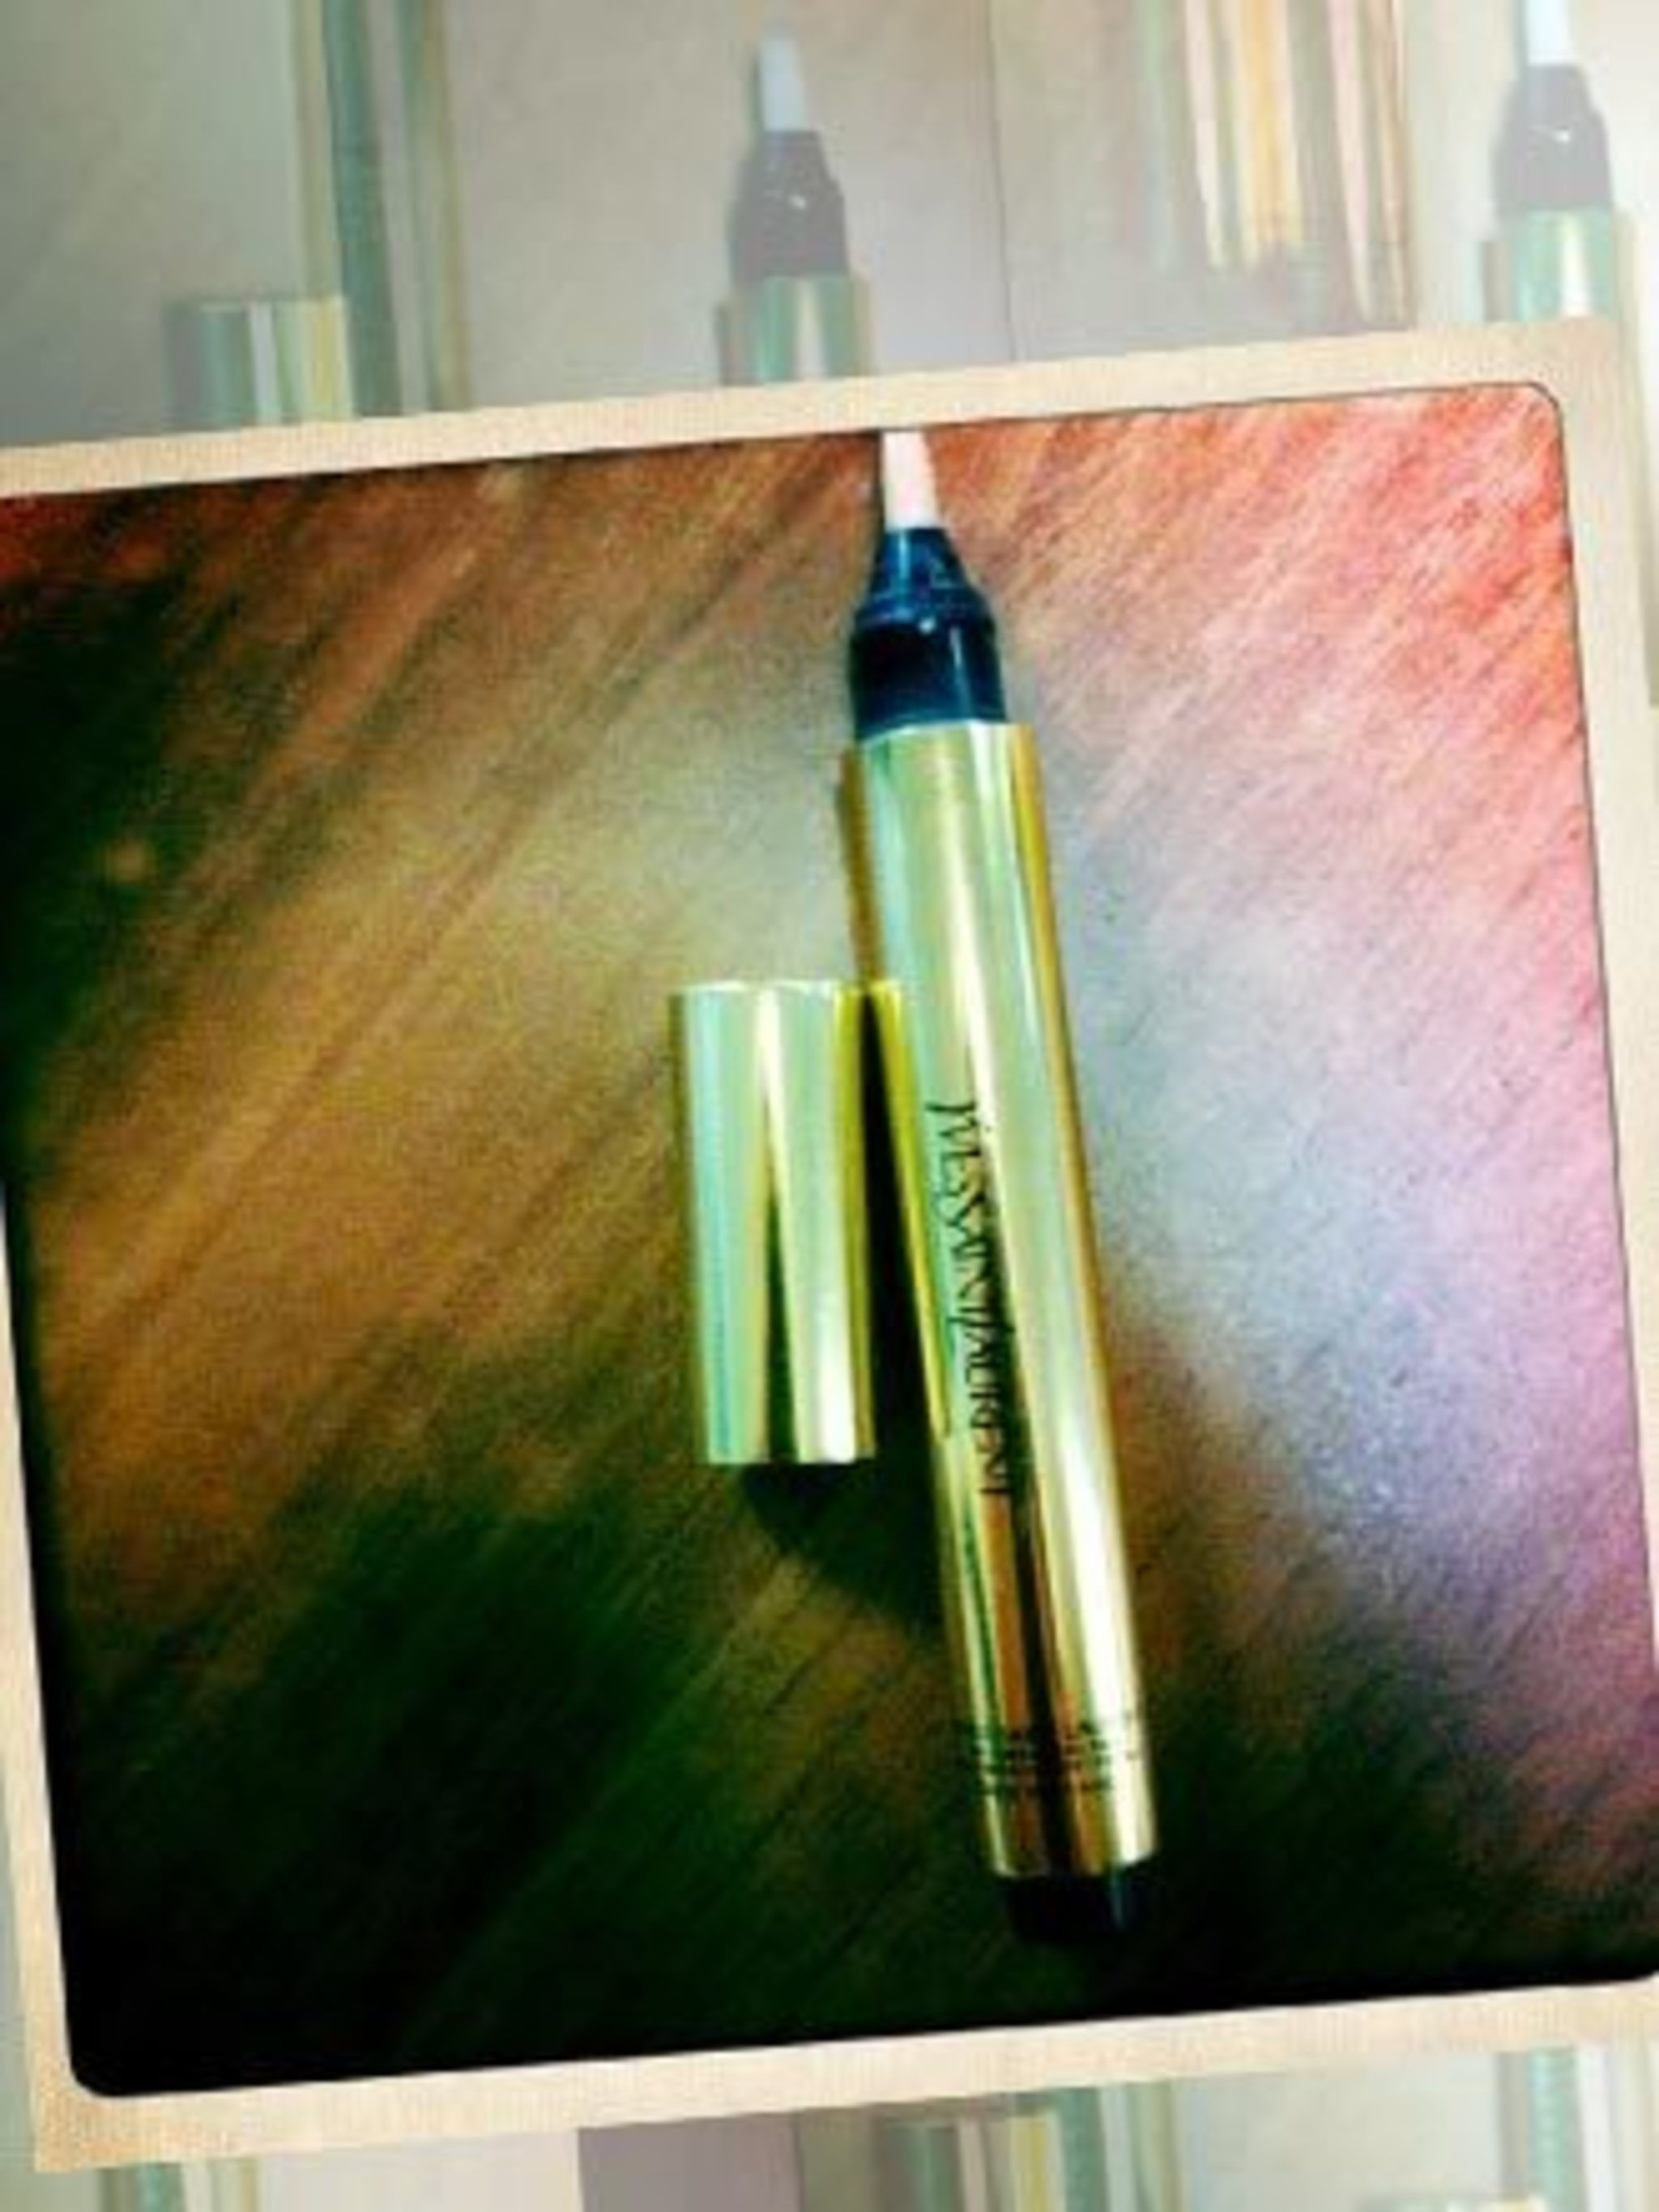 <p><strong>Carrie Gorman, ELLEuk.com Editor:</strong> <em>YSL Touche Eclat</em> 'I'm not a loyal beauty buyer but there's one sole product I've been buying since I was fifteen: YSL's Touche Eclat. Not a groundbreaking revelation but it's part of my make-u